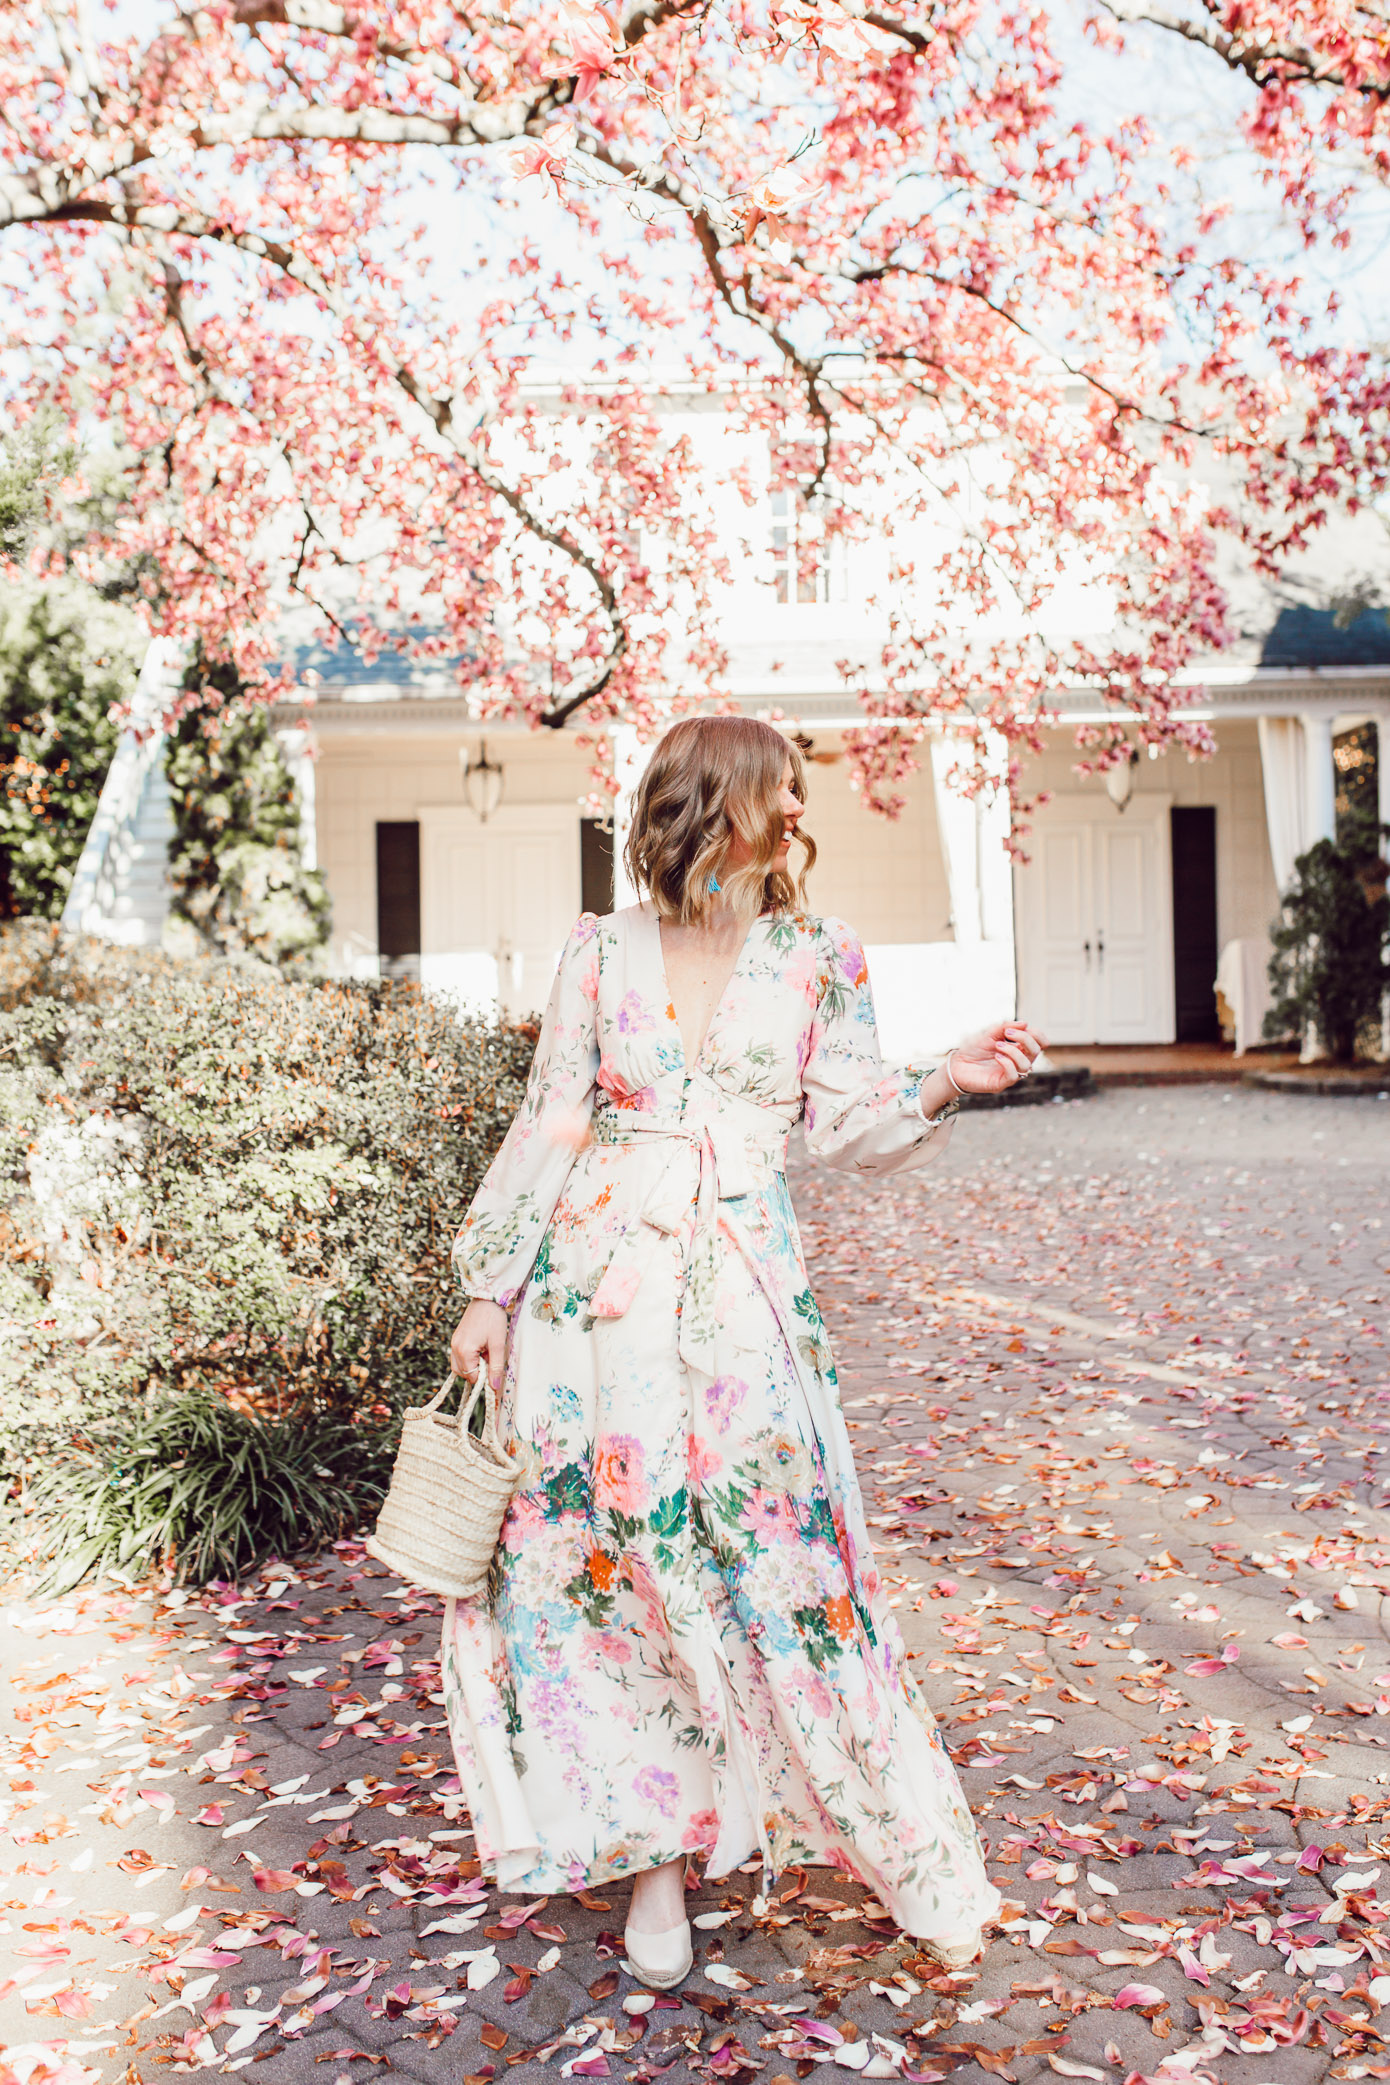 Laura Leigh Elliott styles a long sleeve floral maxi dress for Easter | Louella Reese | | ft. Chicwish, Soludos, Lisi Lerch